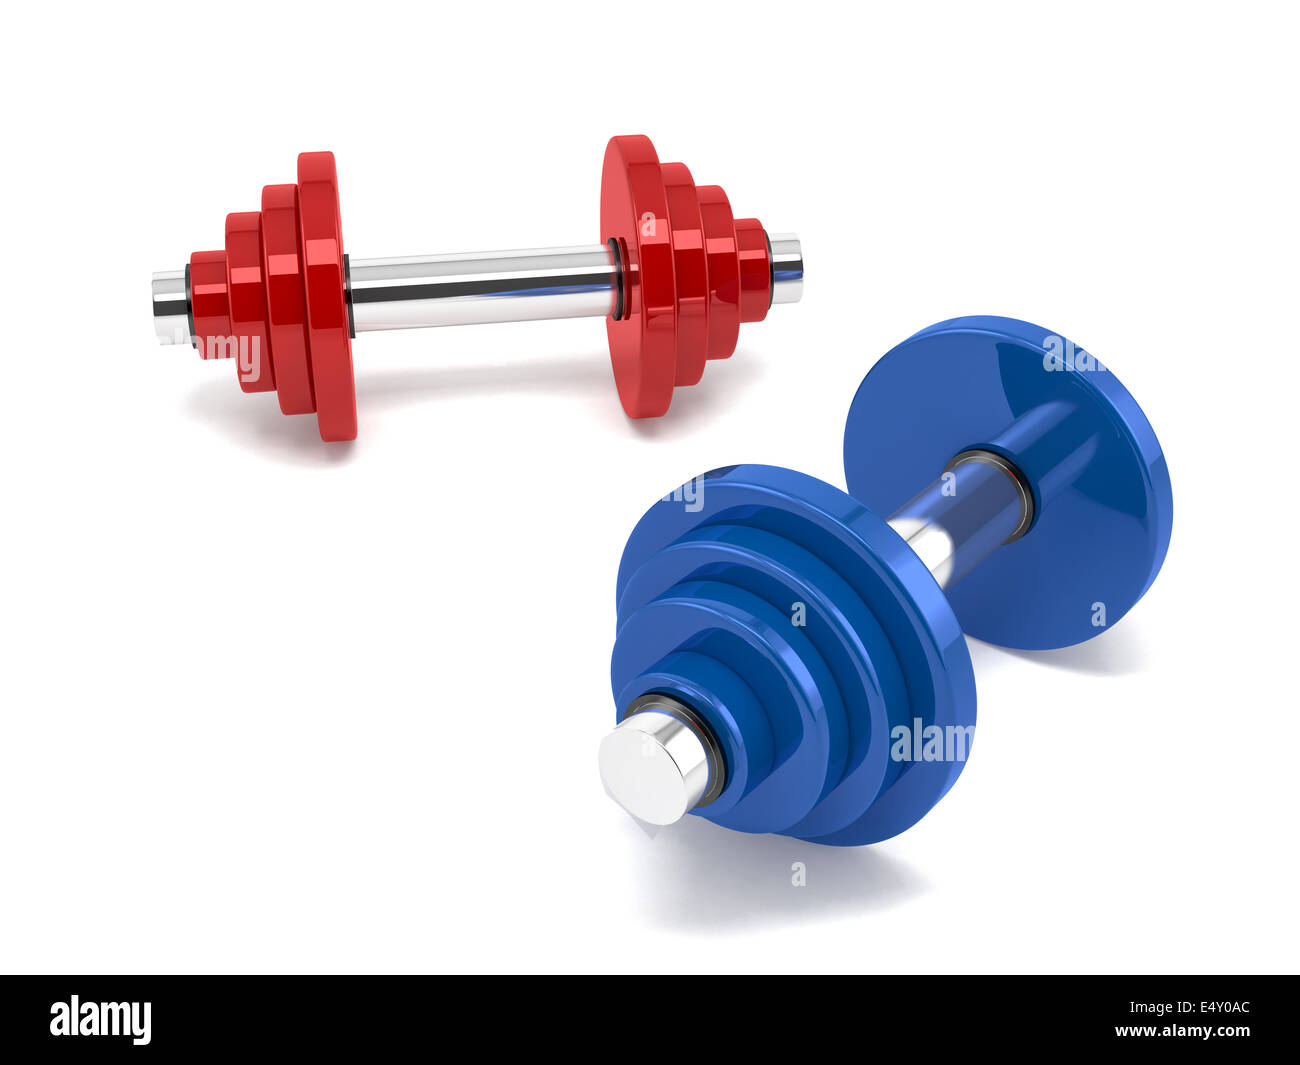 Two dumbbells over white background - Stock Image